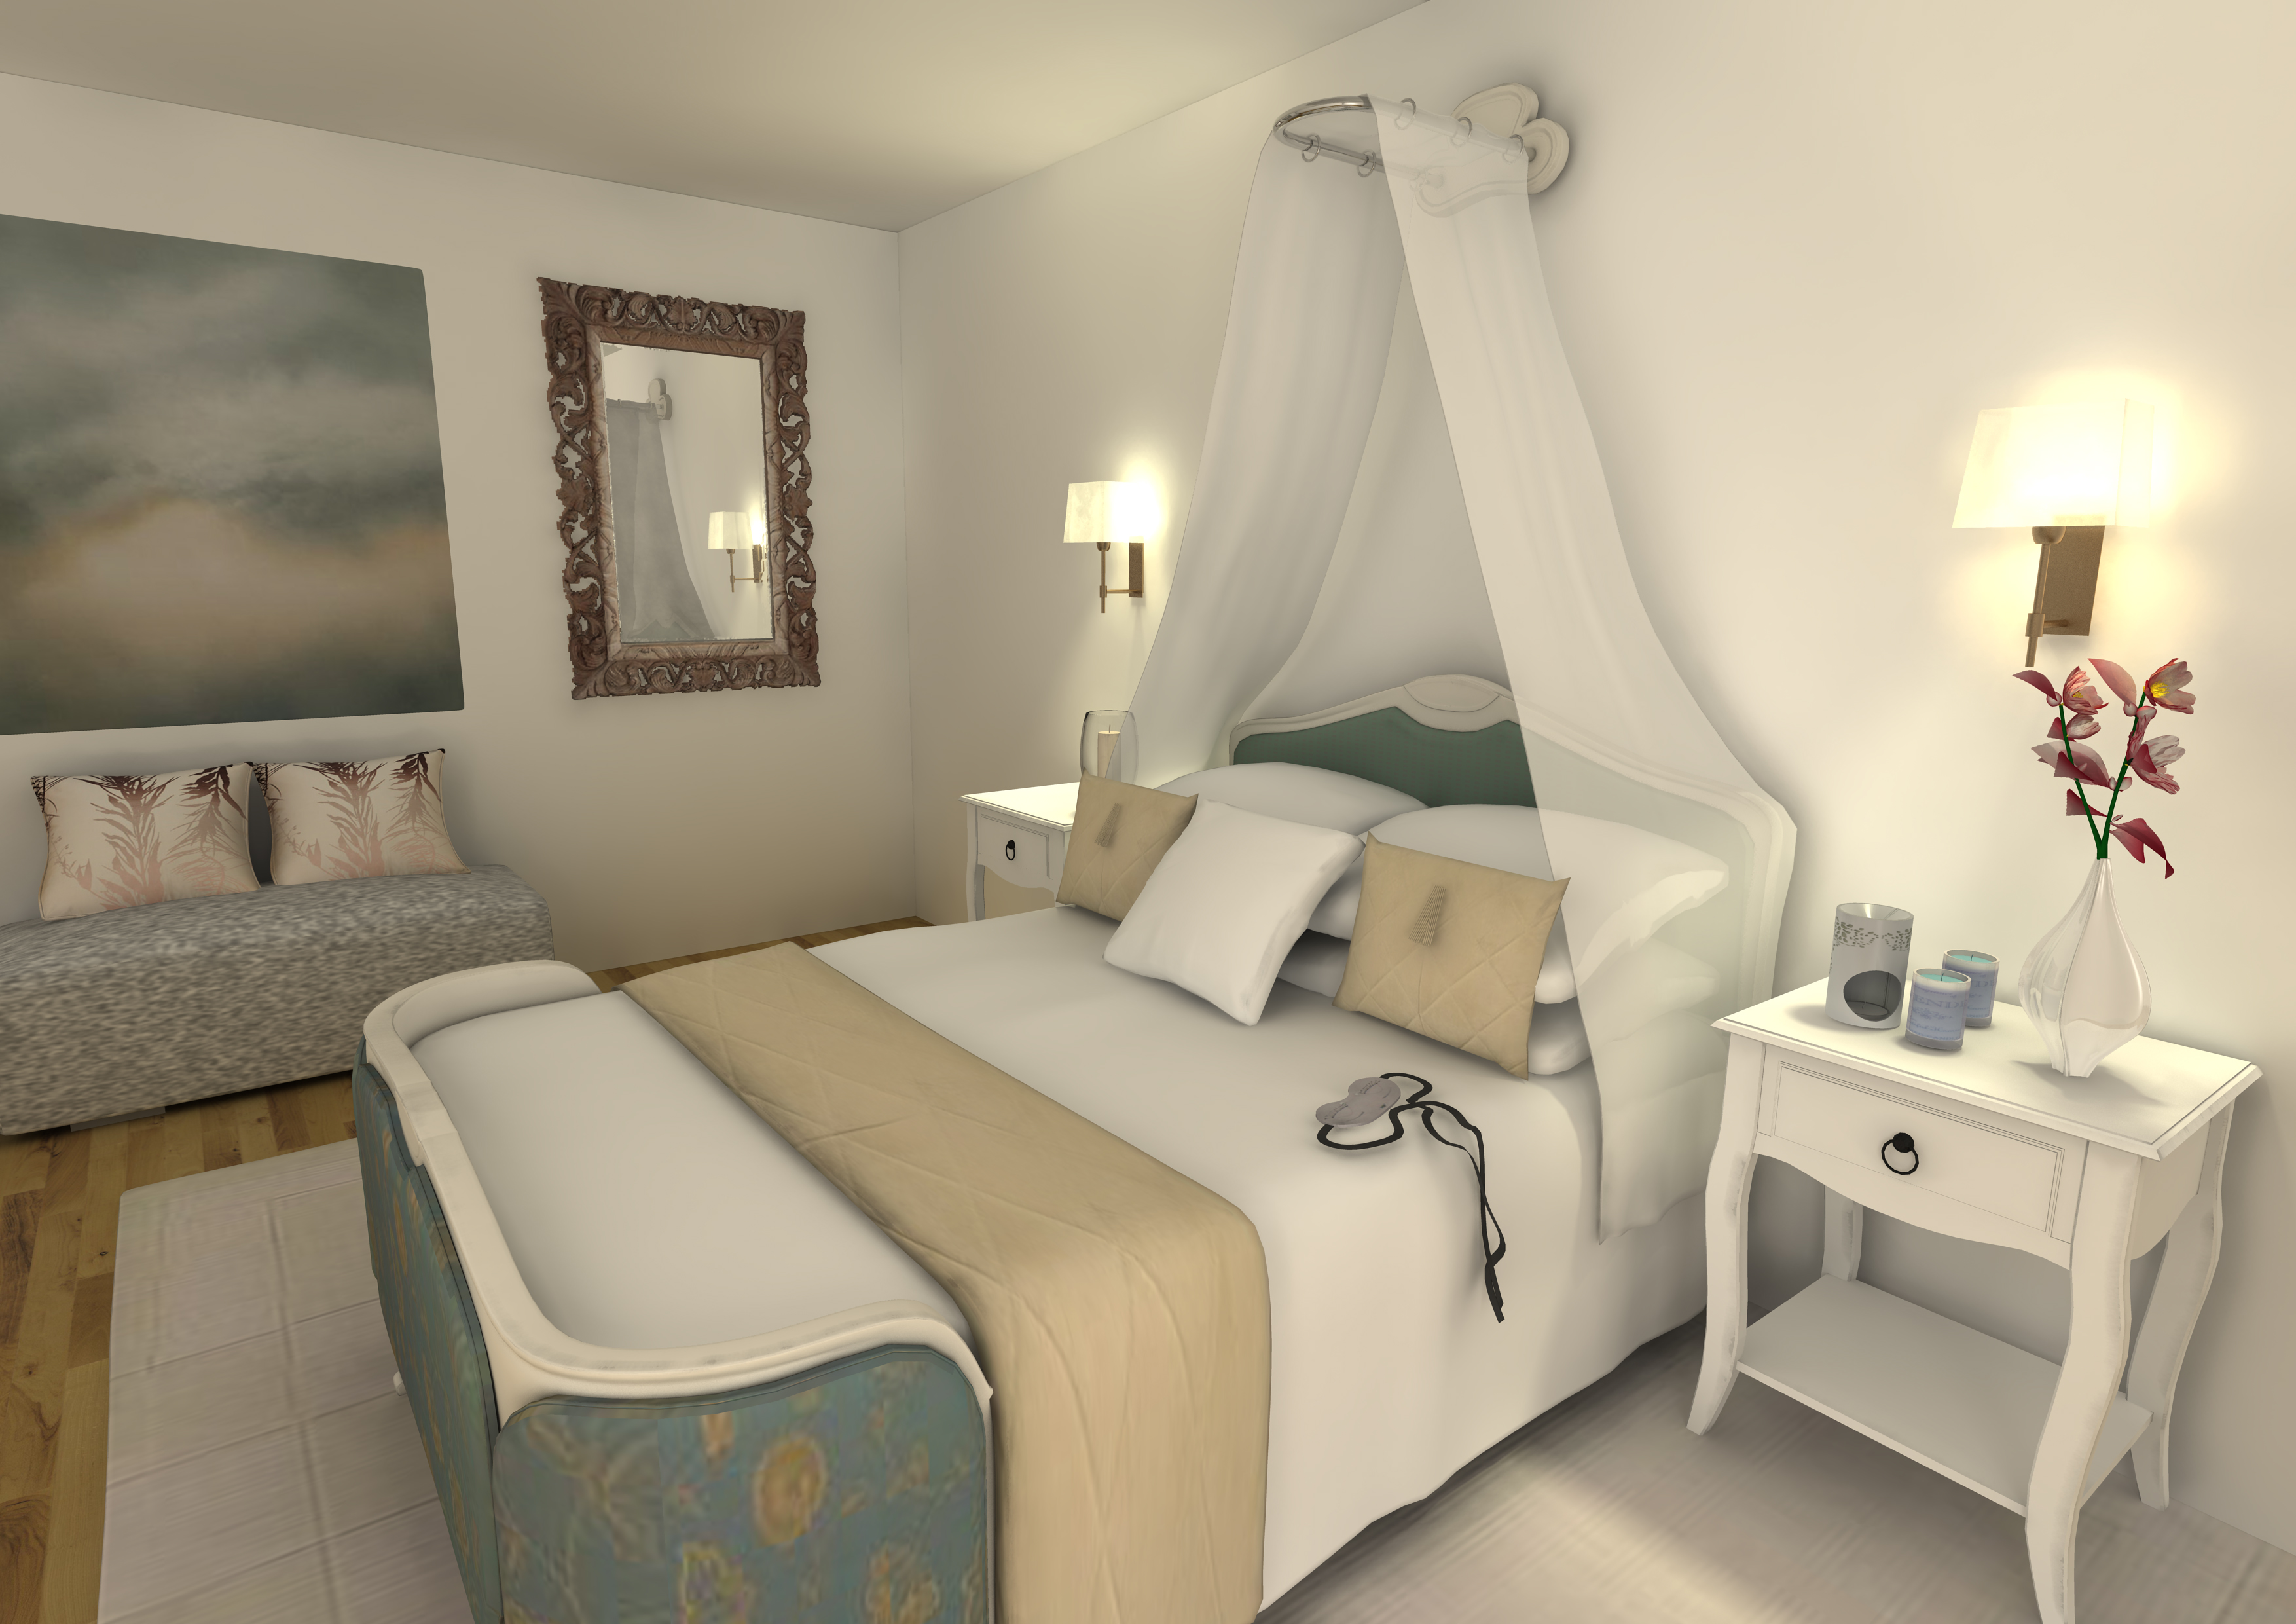 Sleep room florian stephens freelance 3d designer for Sleeping room decoration